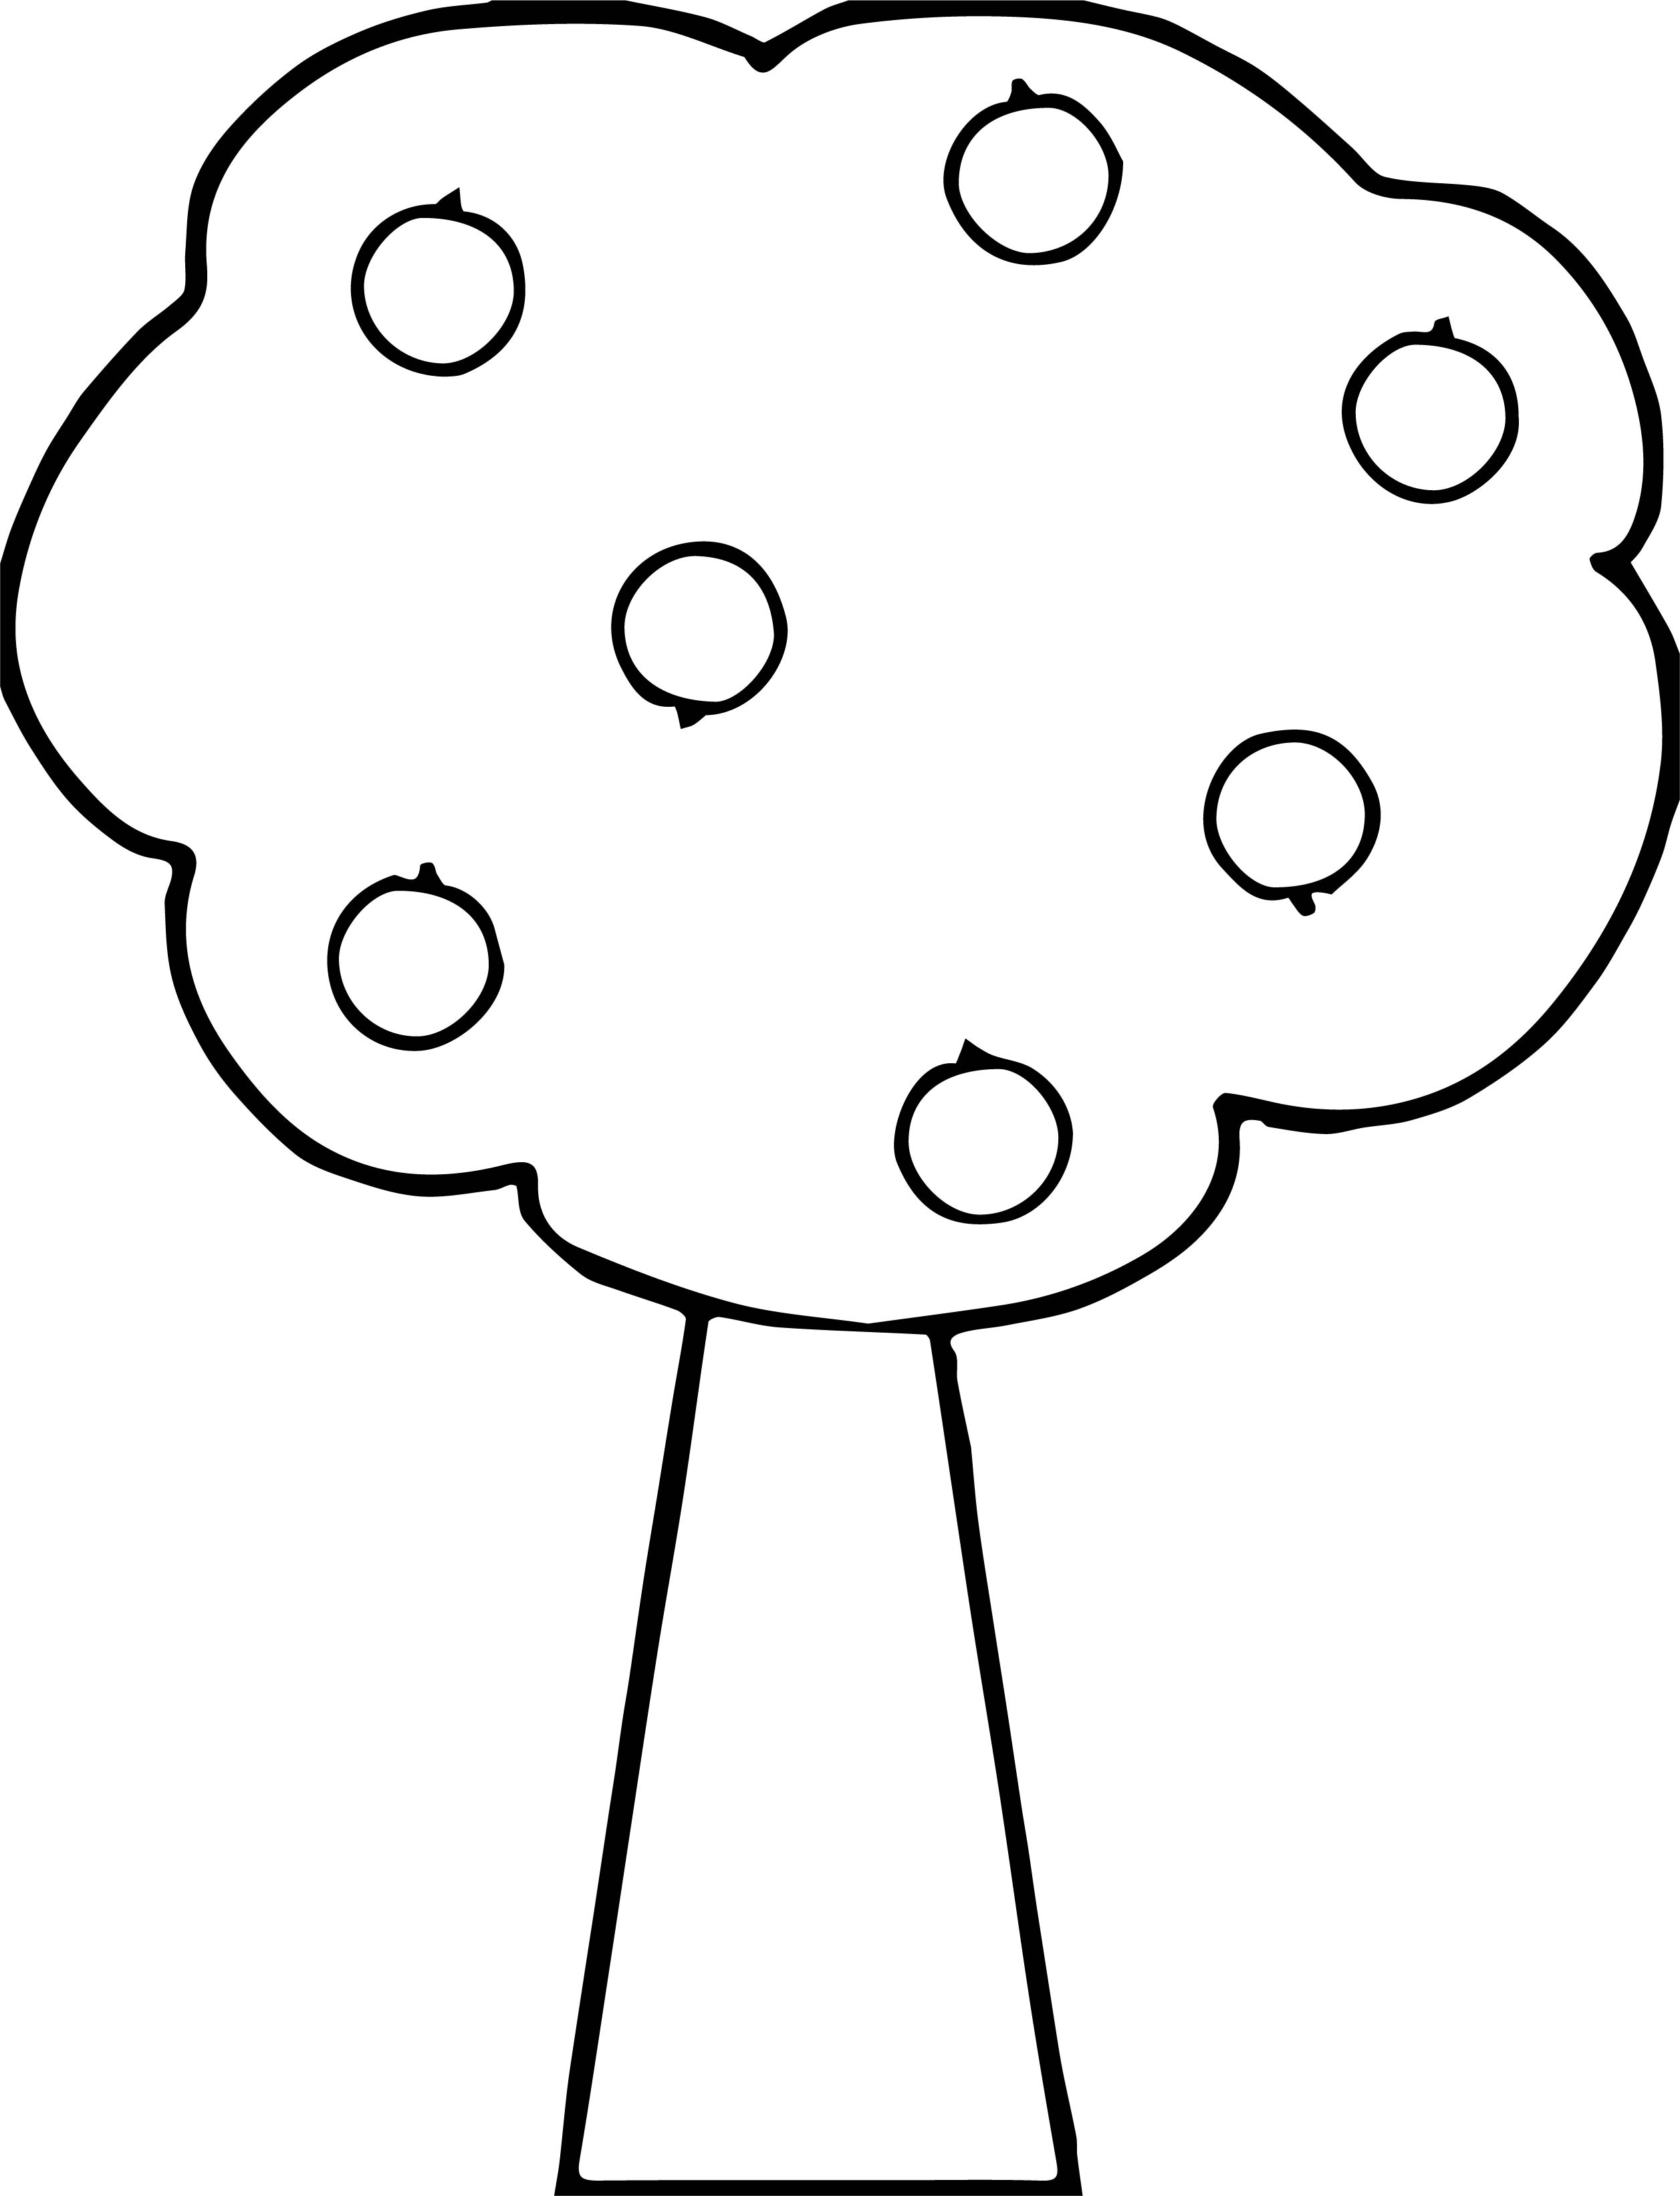 good apple tree coloring pages wecoloringpage